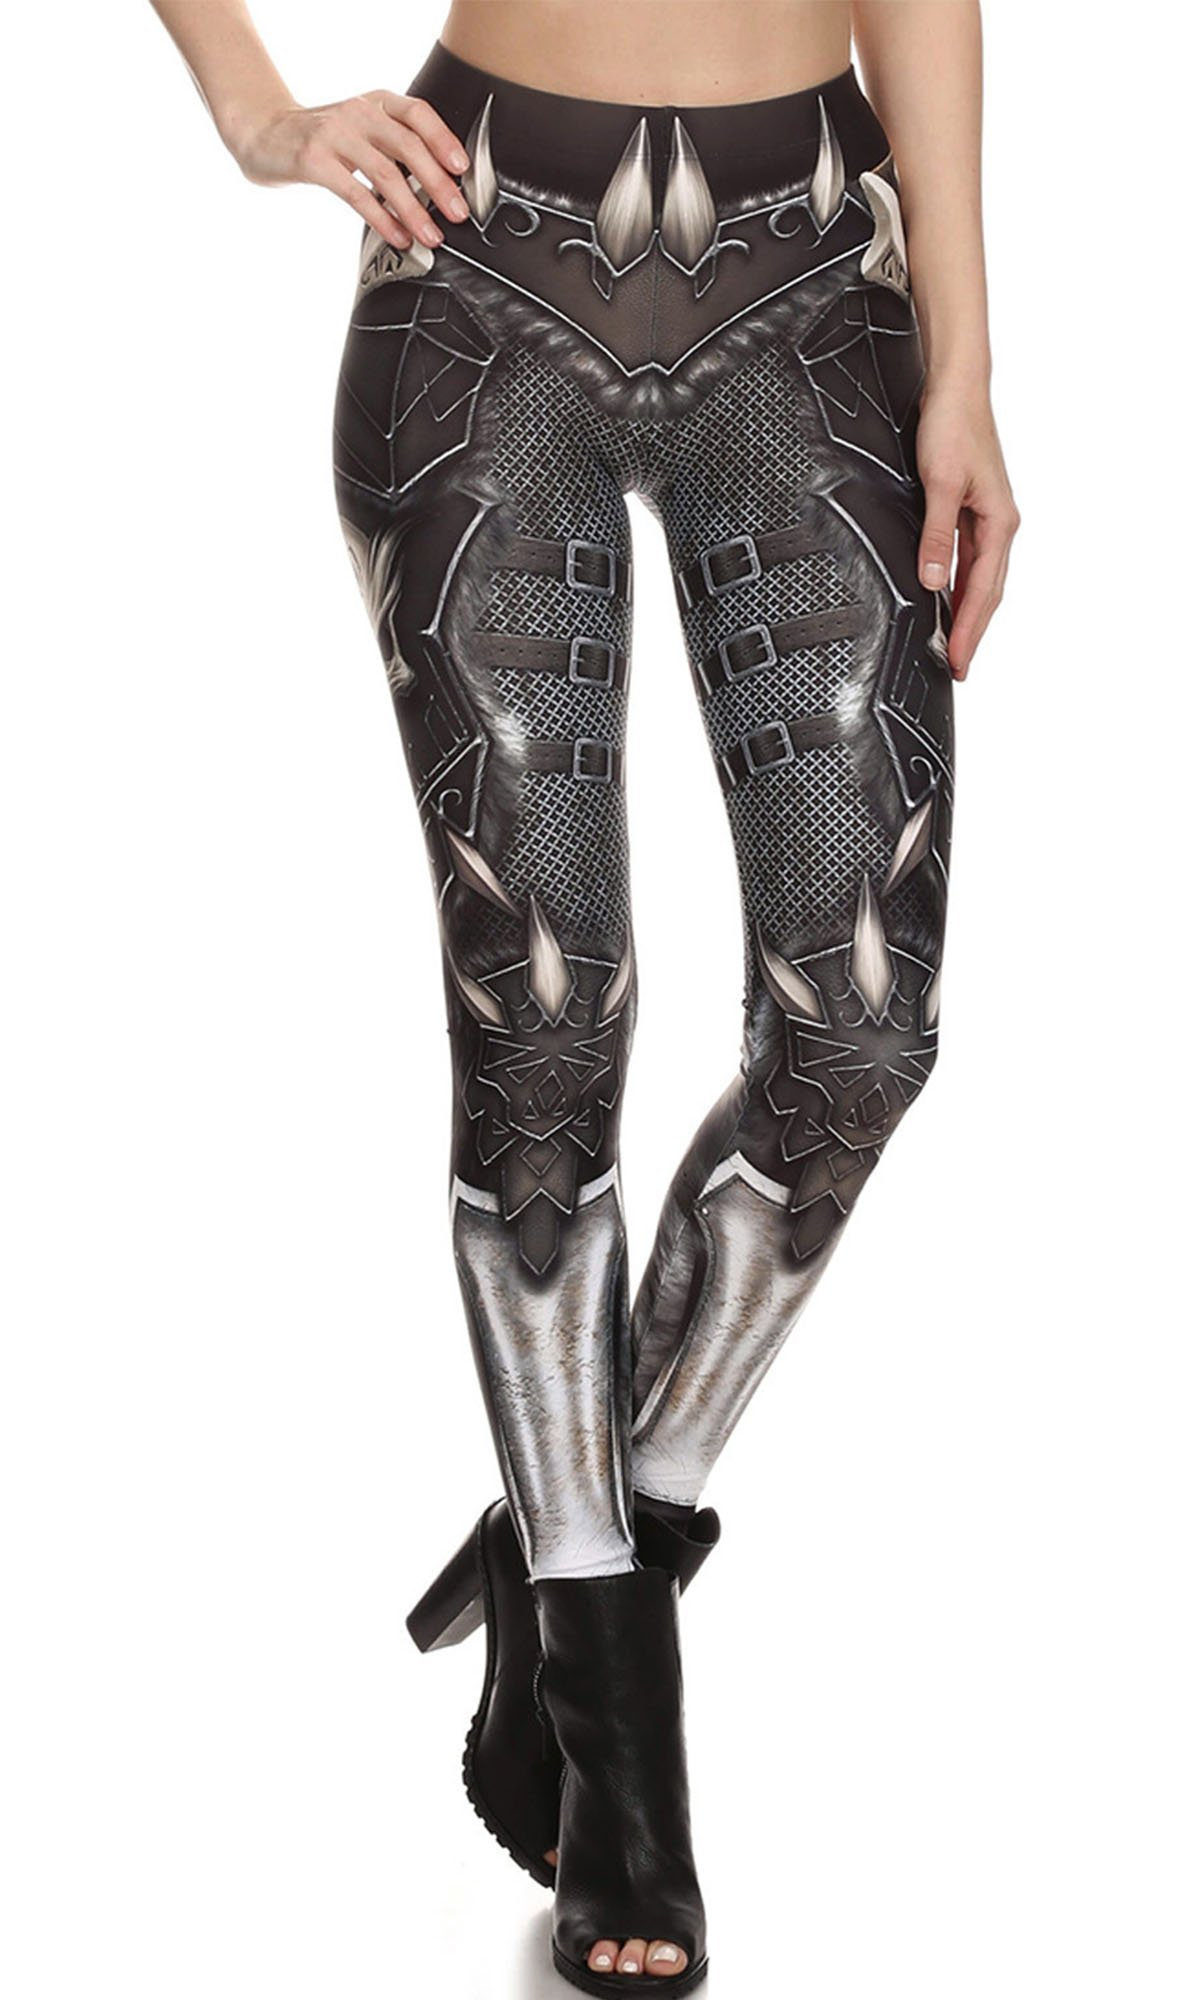 F style Women Skull Pattern Leggings Printed High Waist Slim Pencil Pants,Grey 627,One Size